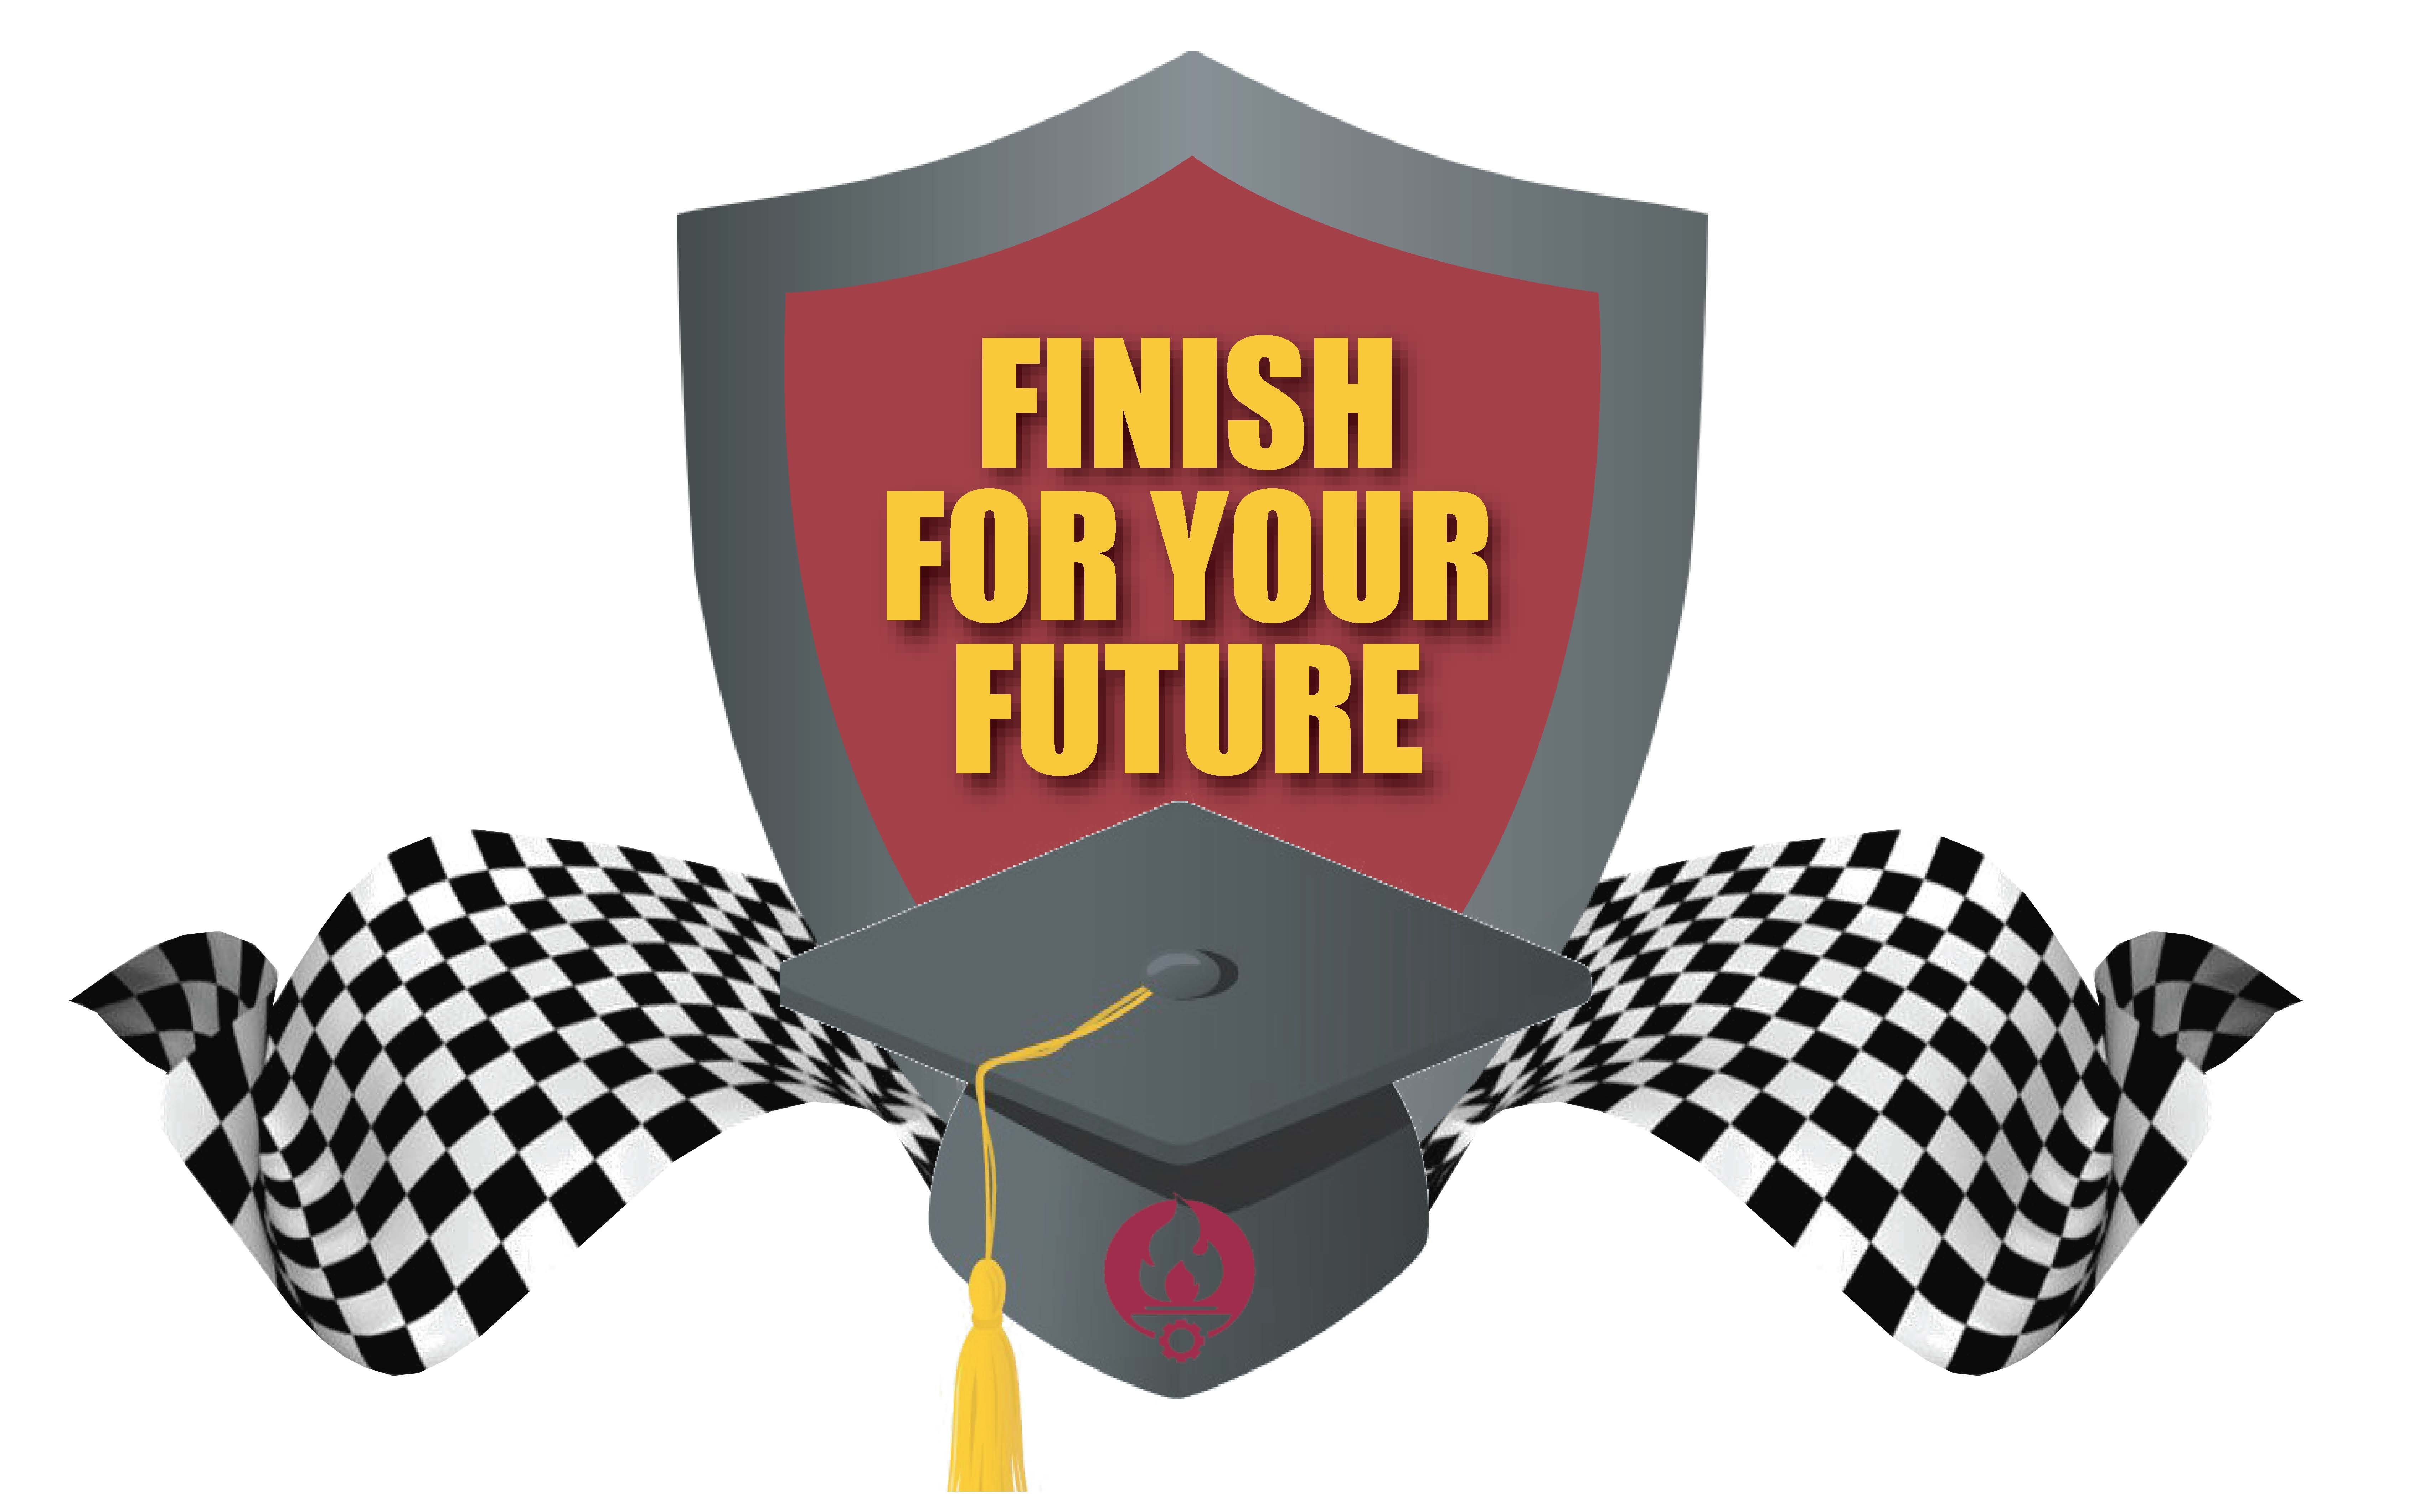 Logo for the Finish for Your Future campaign